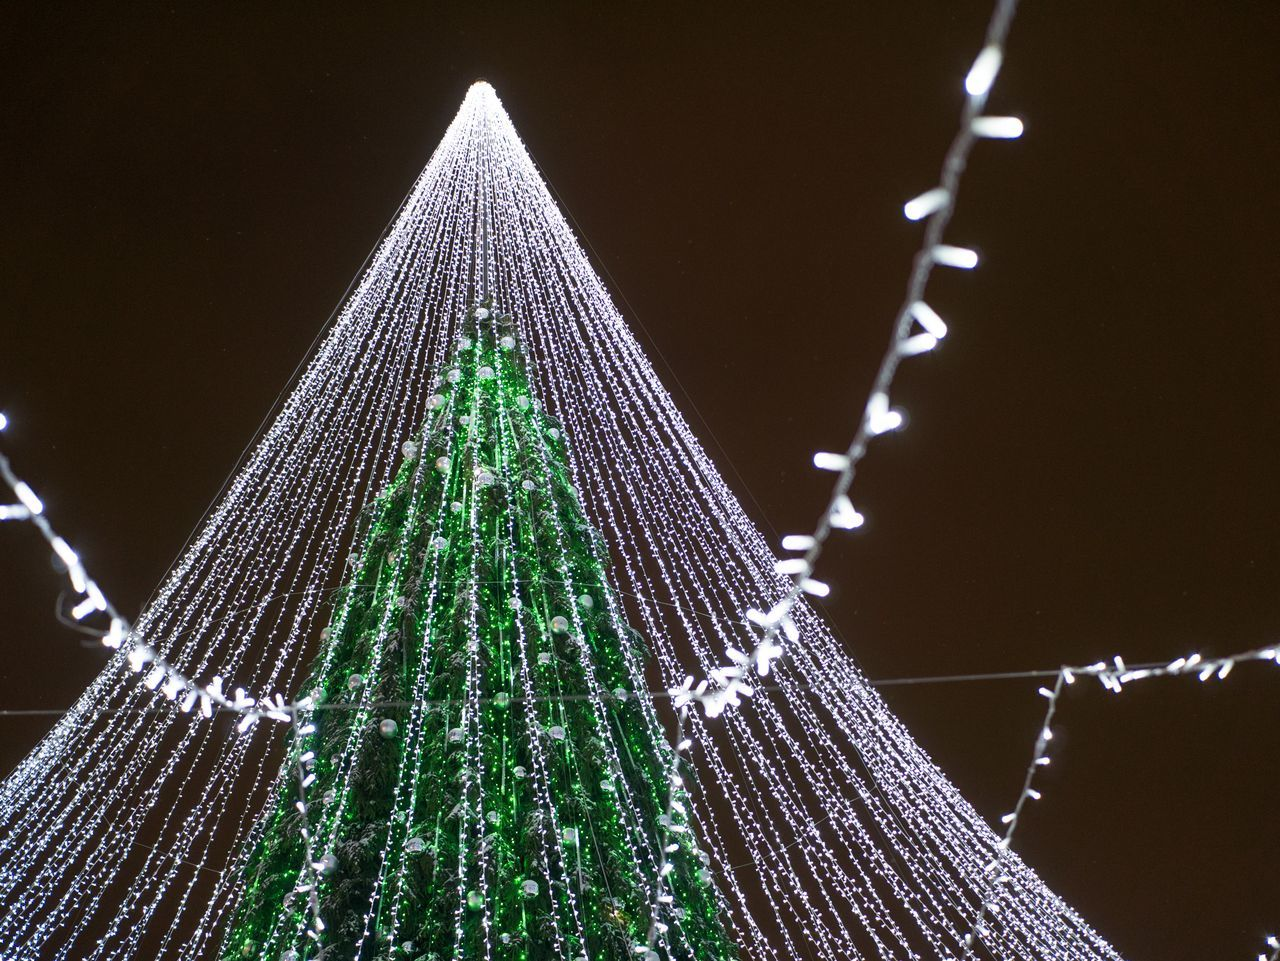 Architecture Built Structure Christmas Christmas Decoration Christmas Ornament Christmas Tree Green Color Illuminated Low Angle View Night No People Outdoors Sky Tree Tree Topper Vilnius Xmas Tree